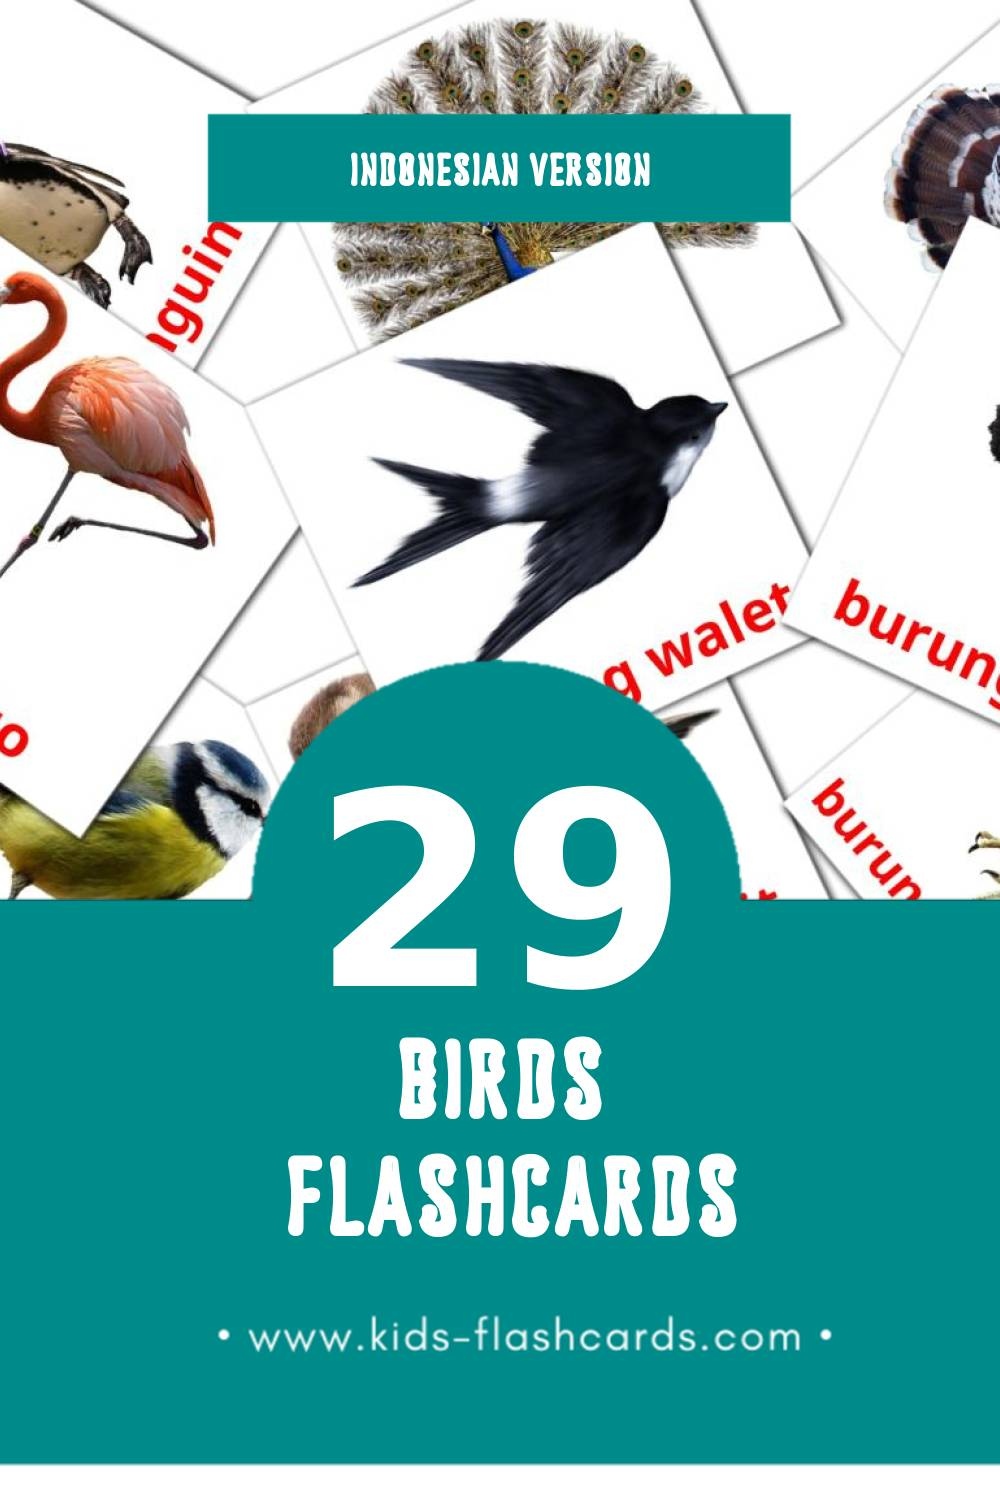 Visual Burung Flashcards for Toddlers (29 cards in Indonesian)